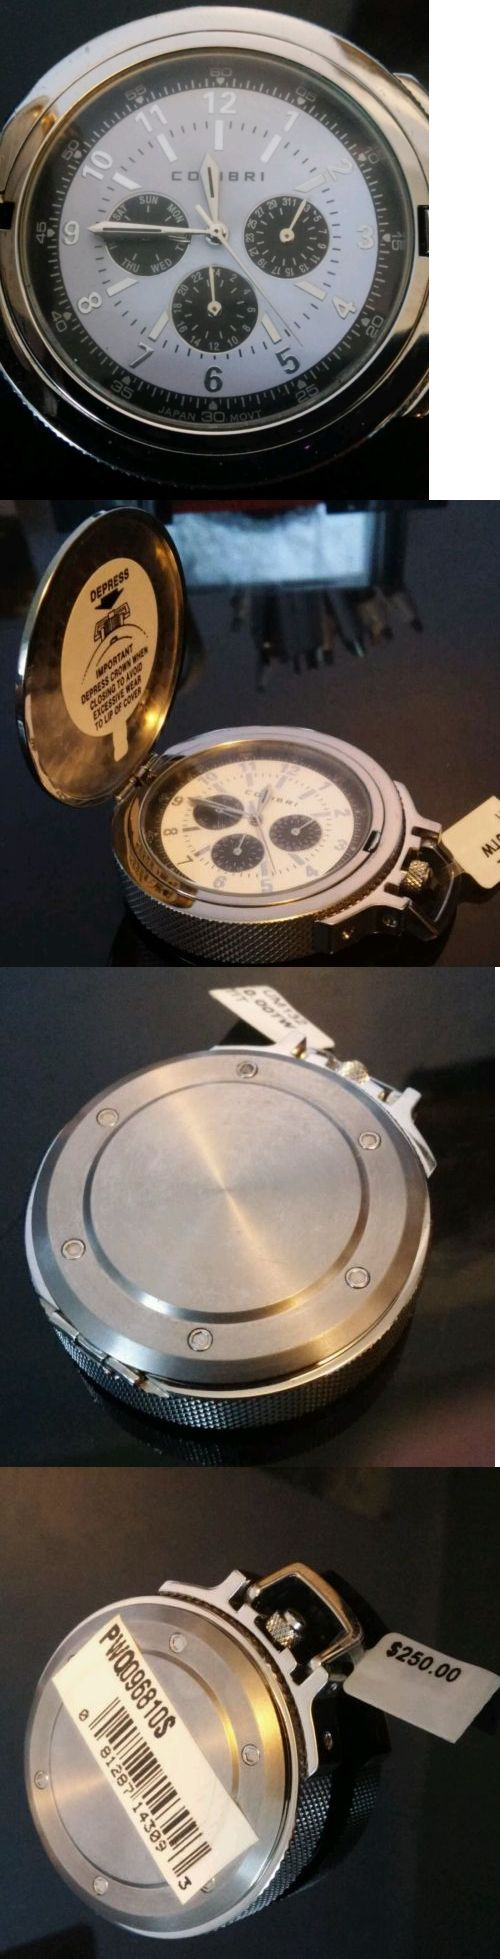 Other Pocket Watches 398: New Colibri Pocket Watch With Day Date And 24 Hour Subdials -> BUY IT NOW ONLY: $125 on eBay!